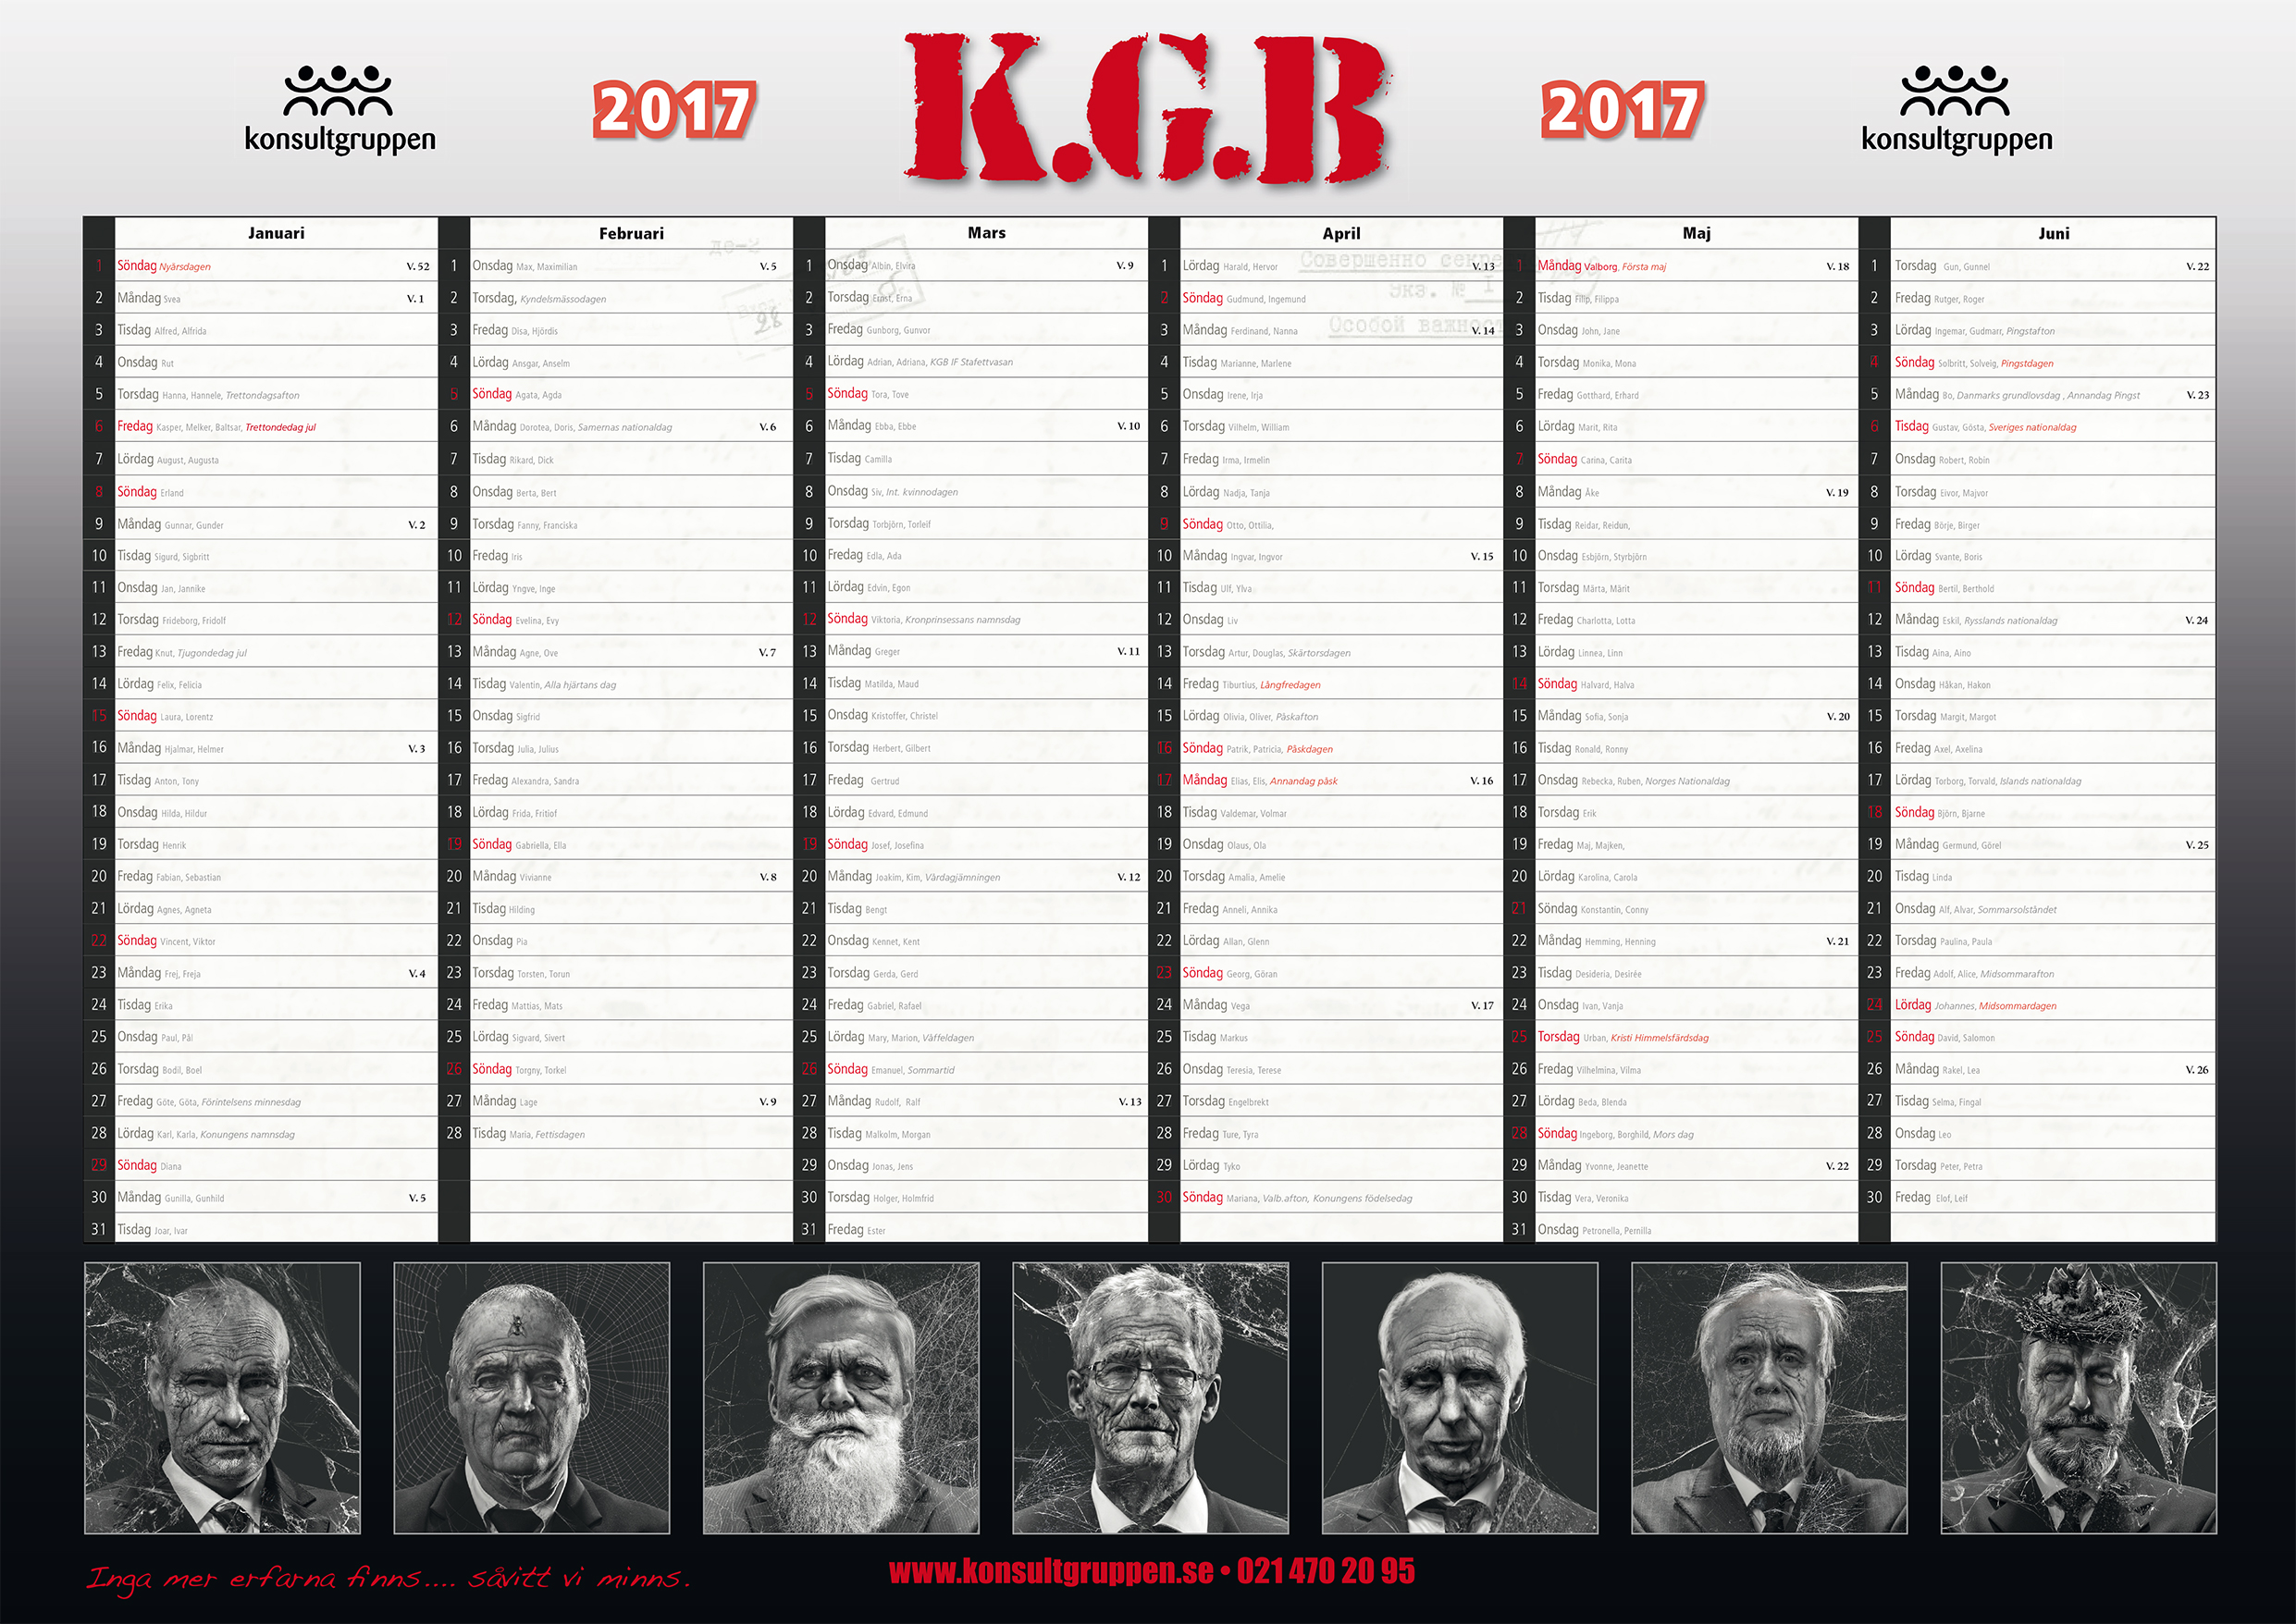 KGB_Kalender_2017_Jan-Jun_Web.jpg